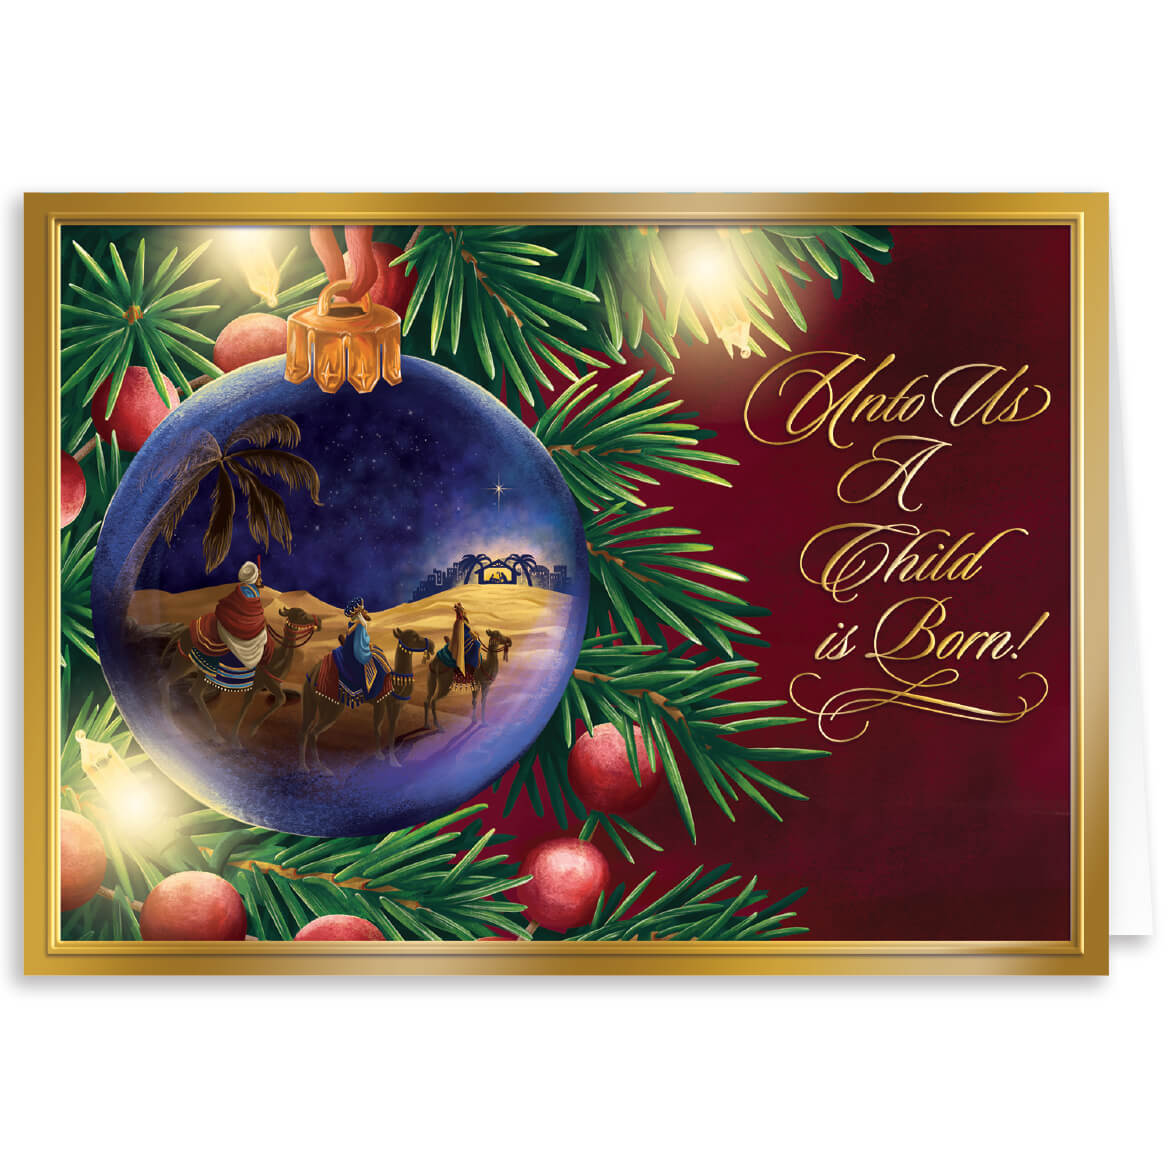 Personalized Nativity Christmas Card Set of 20 - Walter Drake